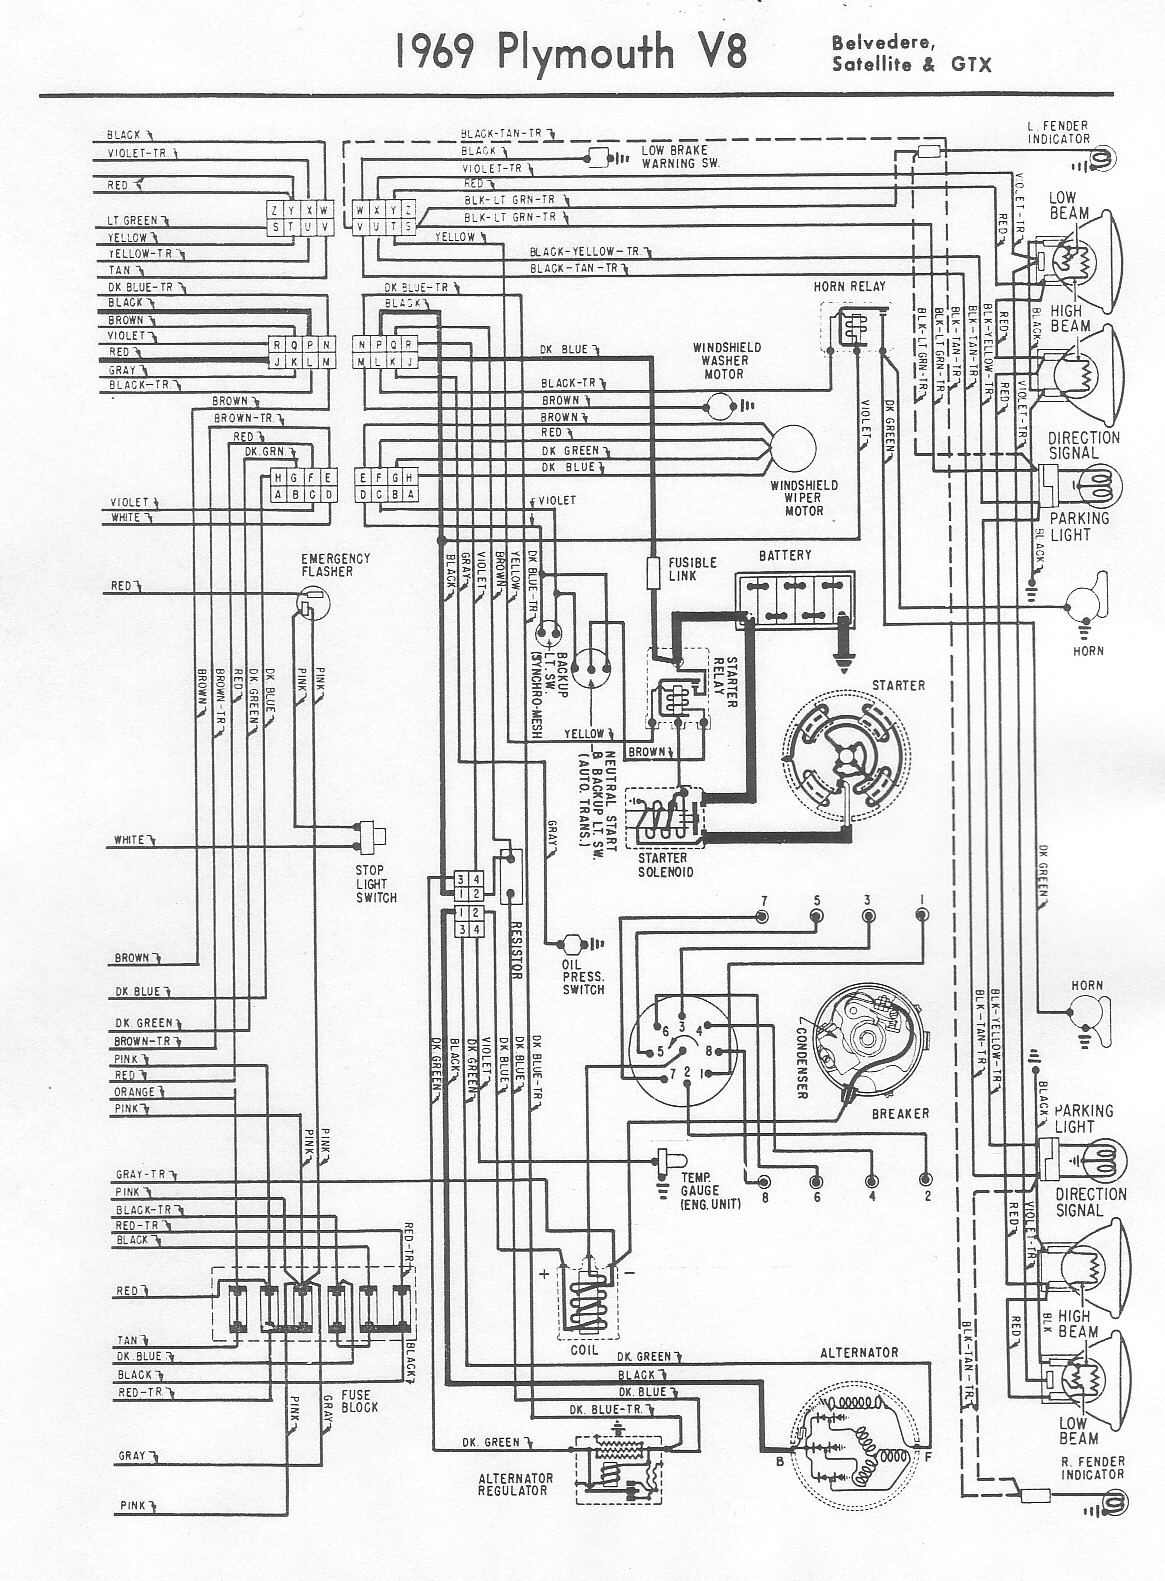 windshield wiper wiring diagram for chevy truck best wiring library rh 198 princestaash org